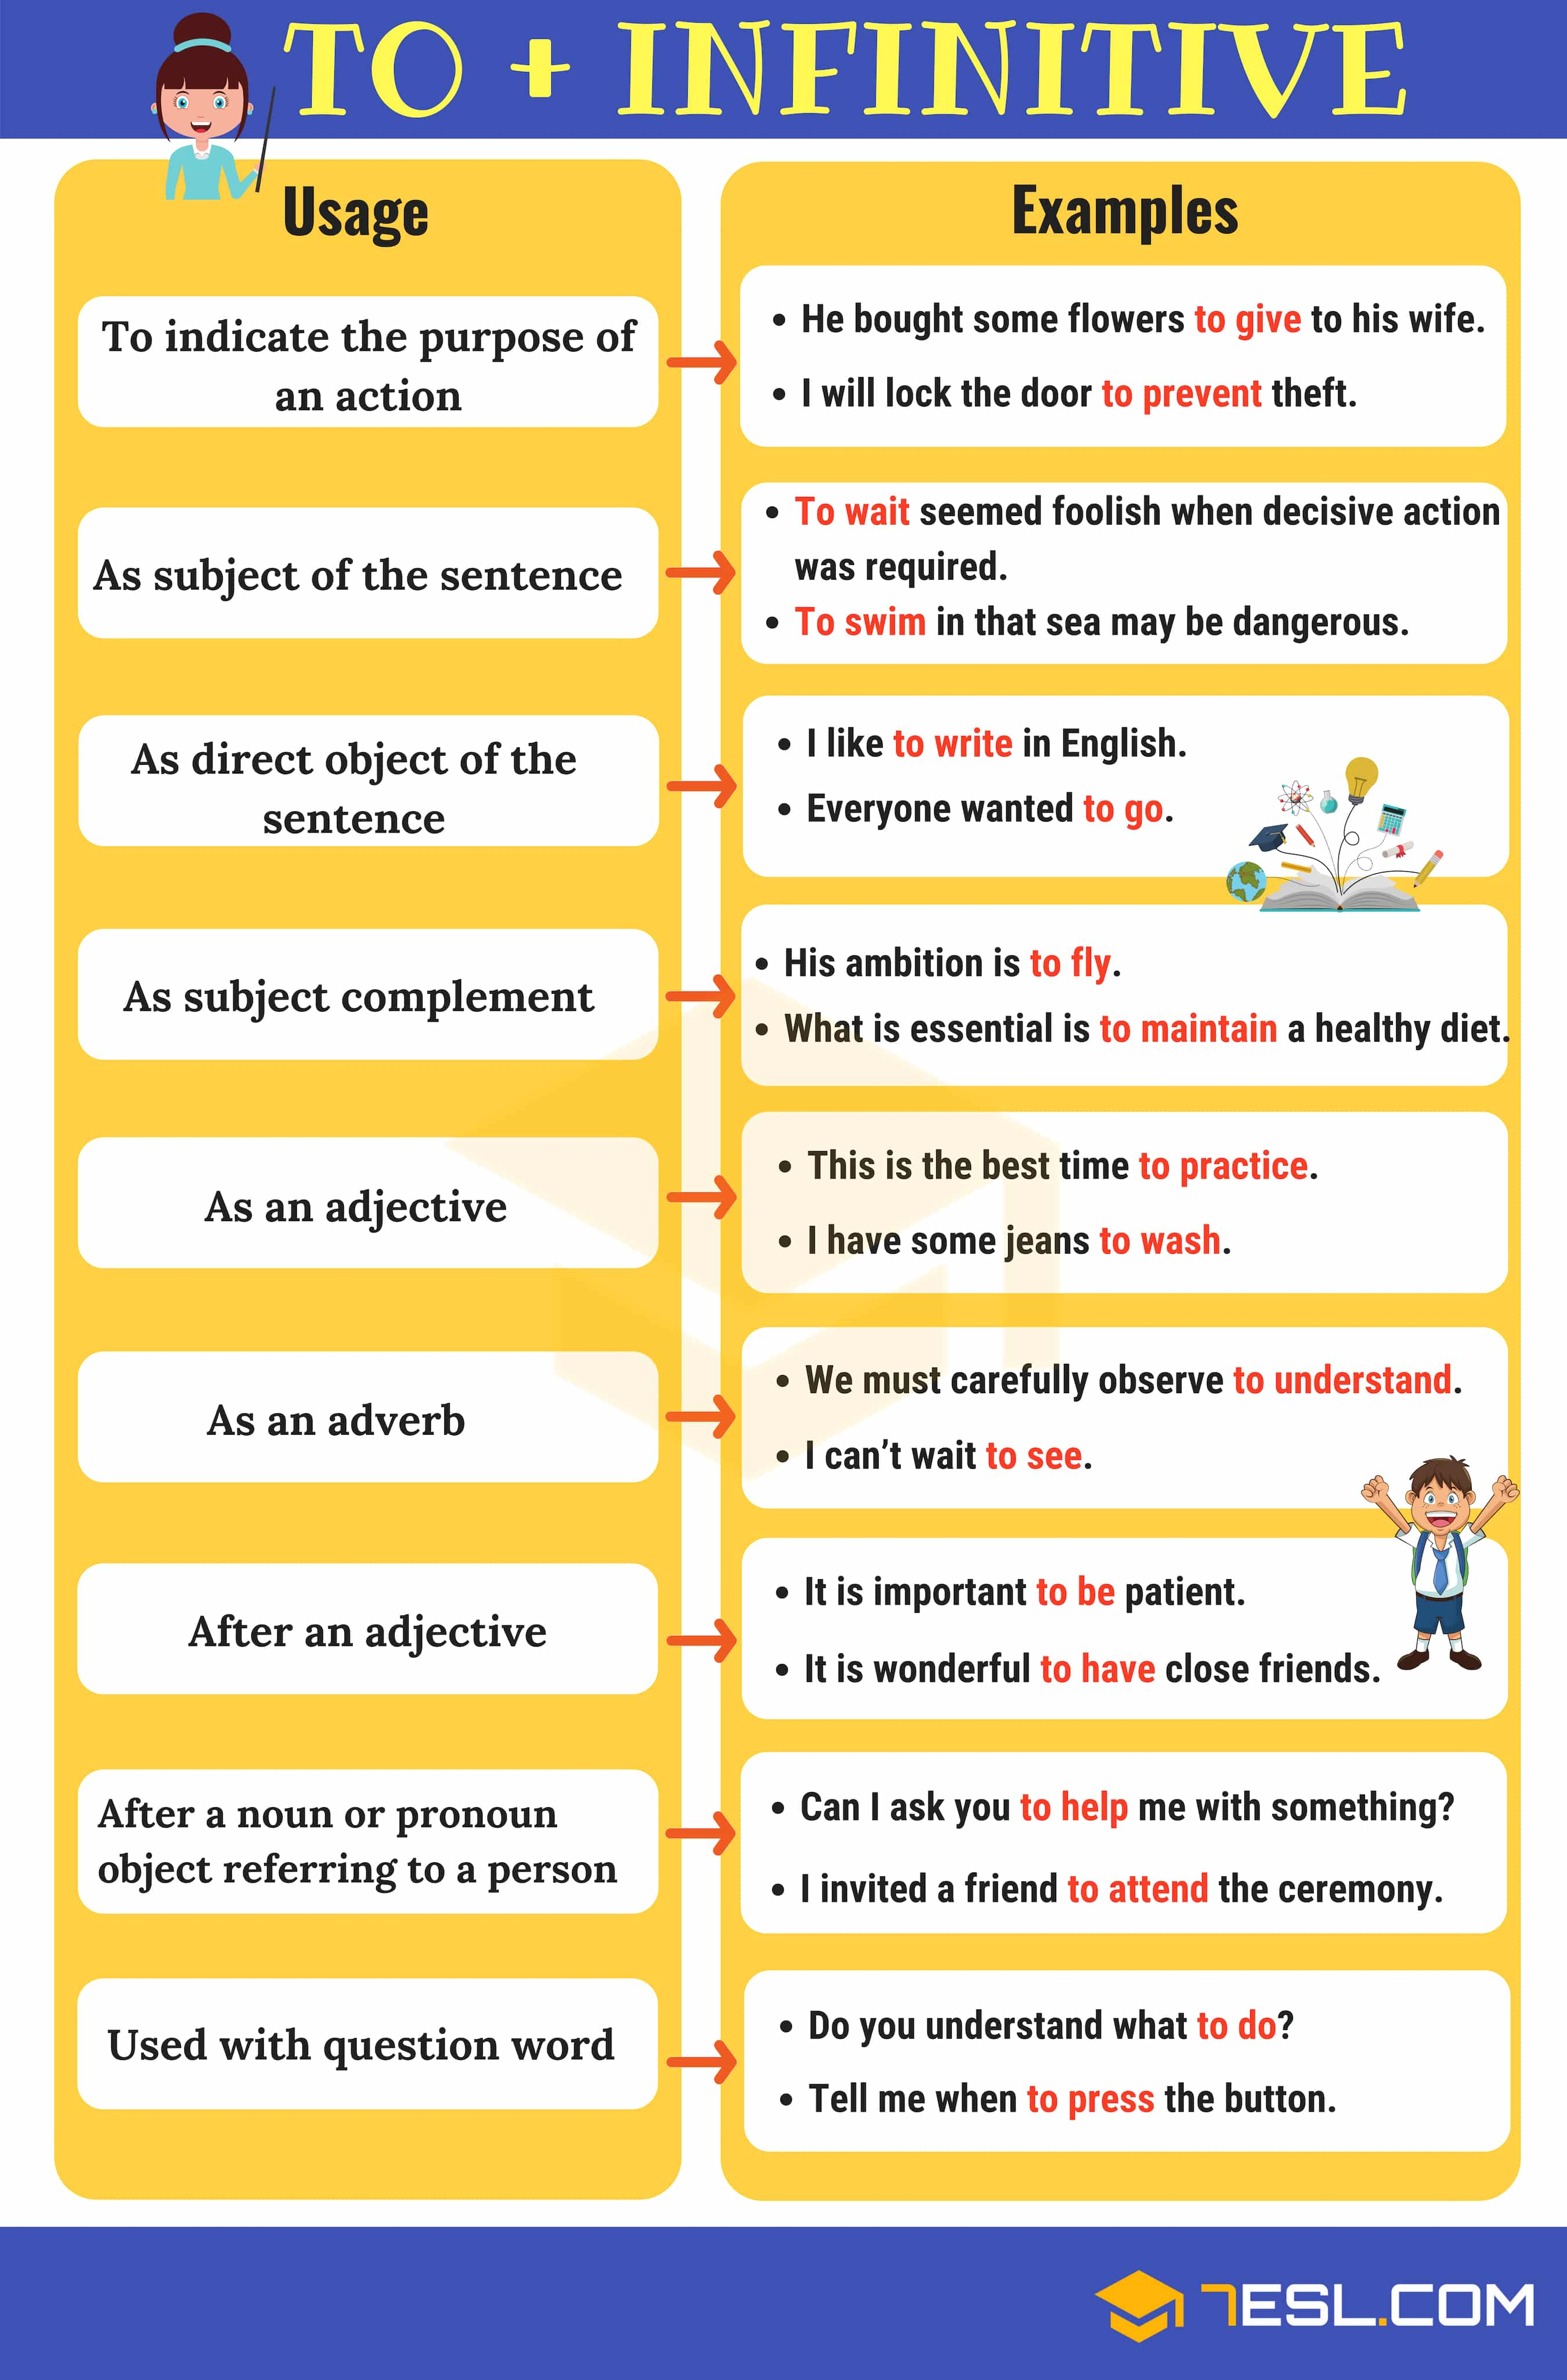 Infinitives in English